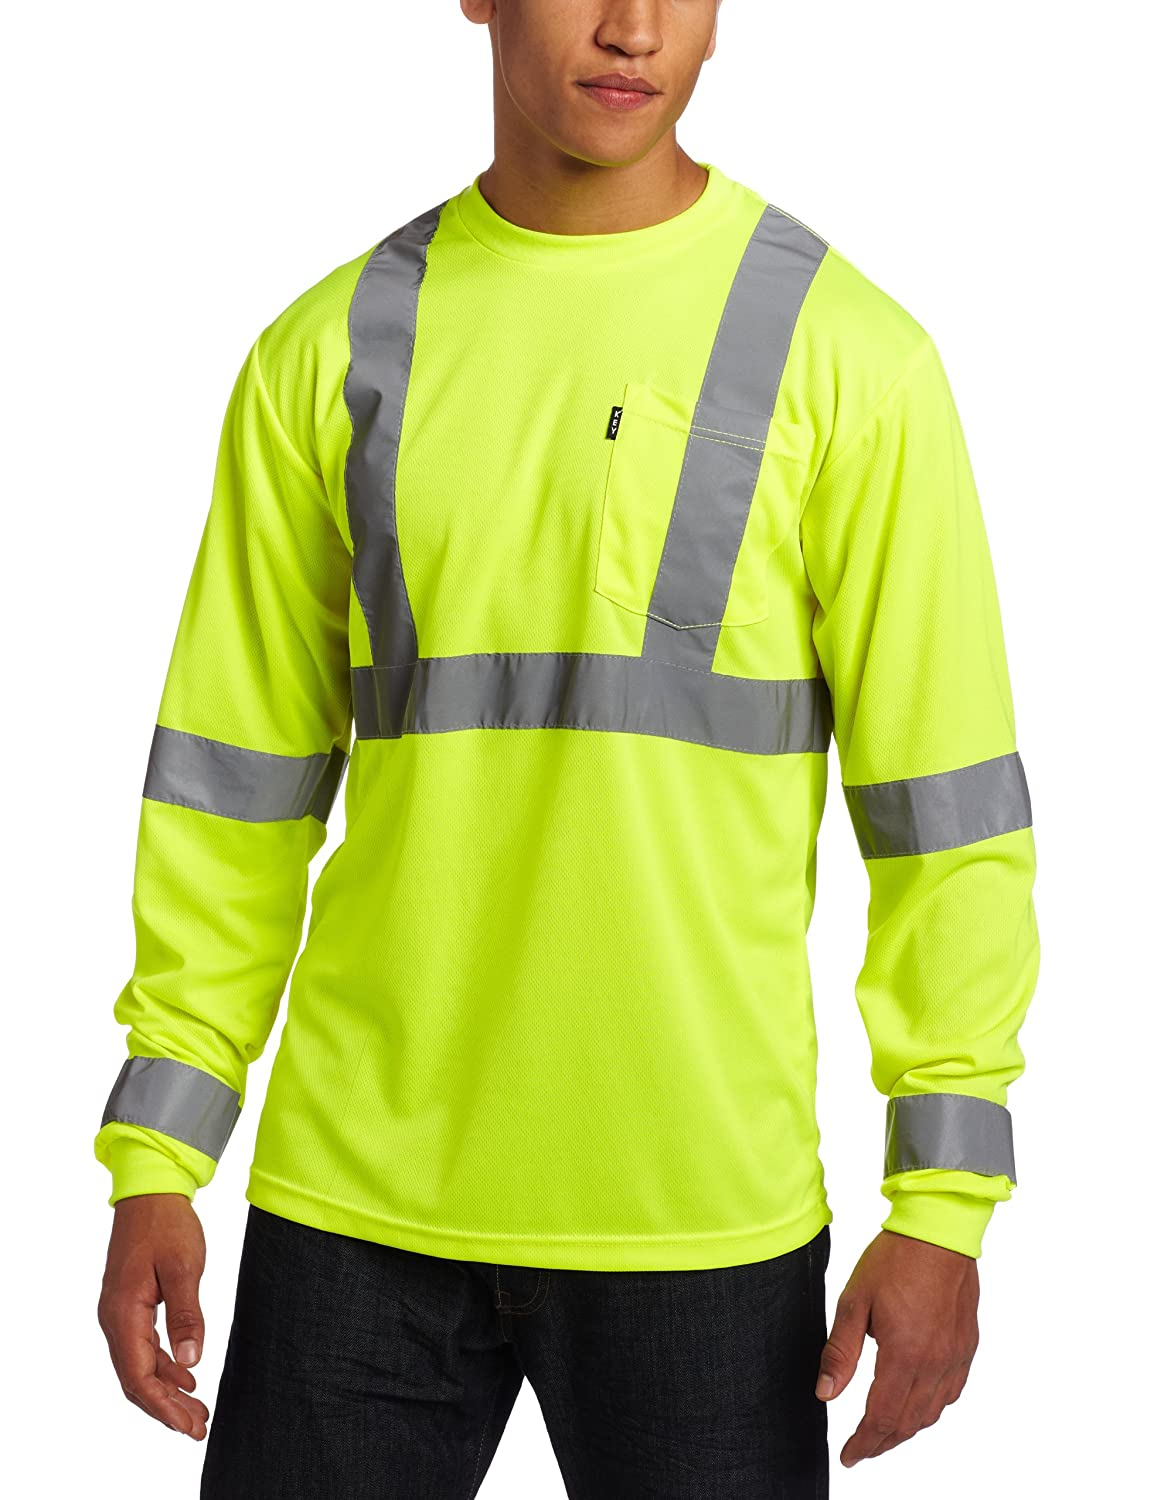 Key Apparel Men's ANSI II Class 3 Hi-Visibility Waffle knit Long Sleeve Pocket T-Shirt 848